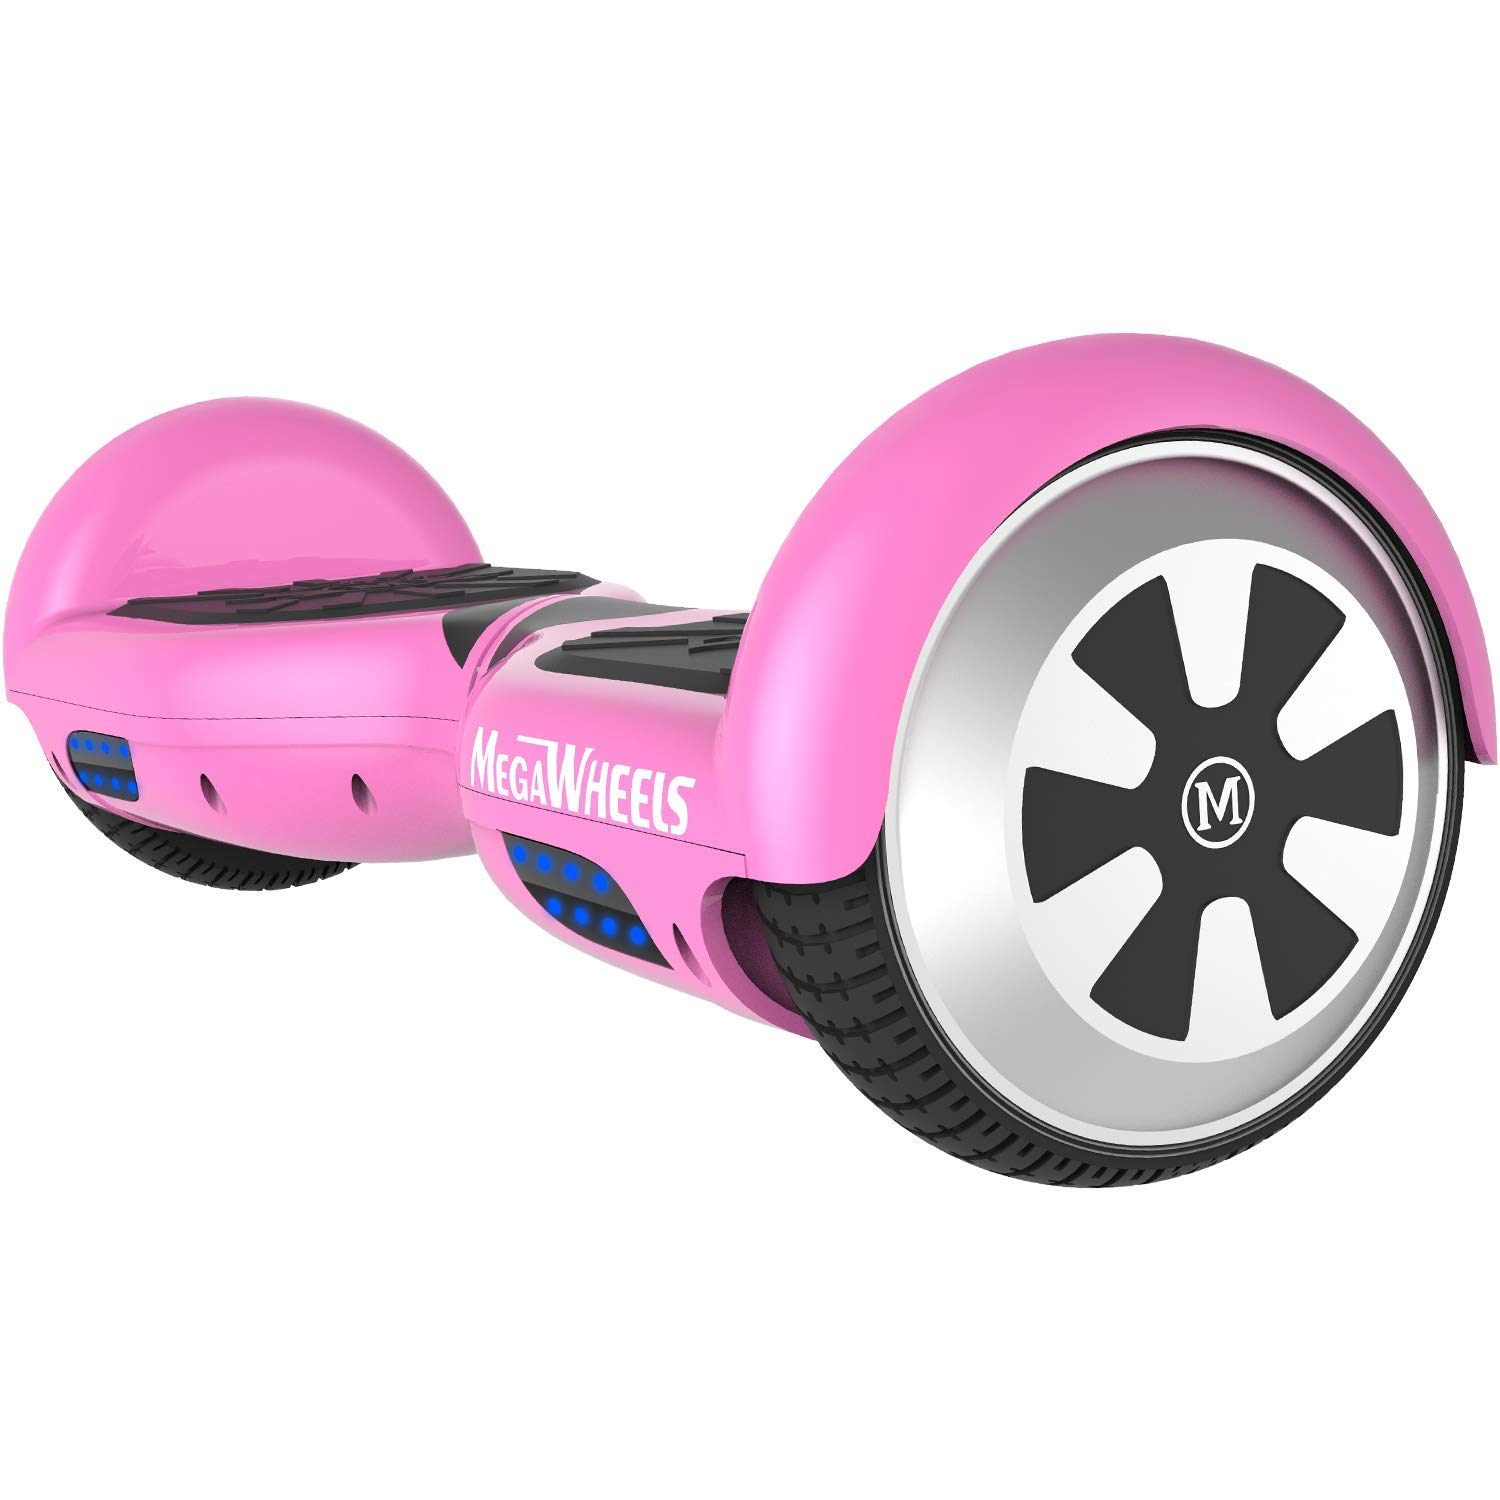 Awesome hoverboard!  The color is a bit girly but it works well.